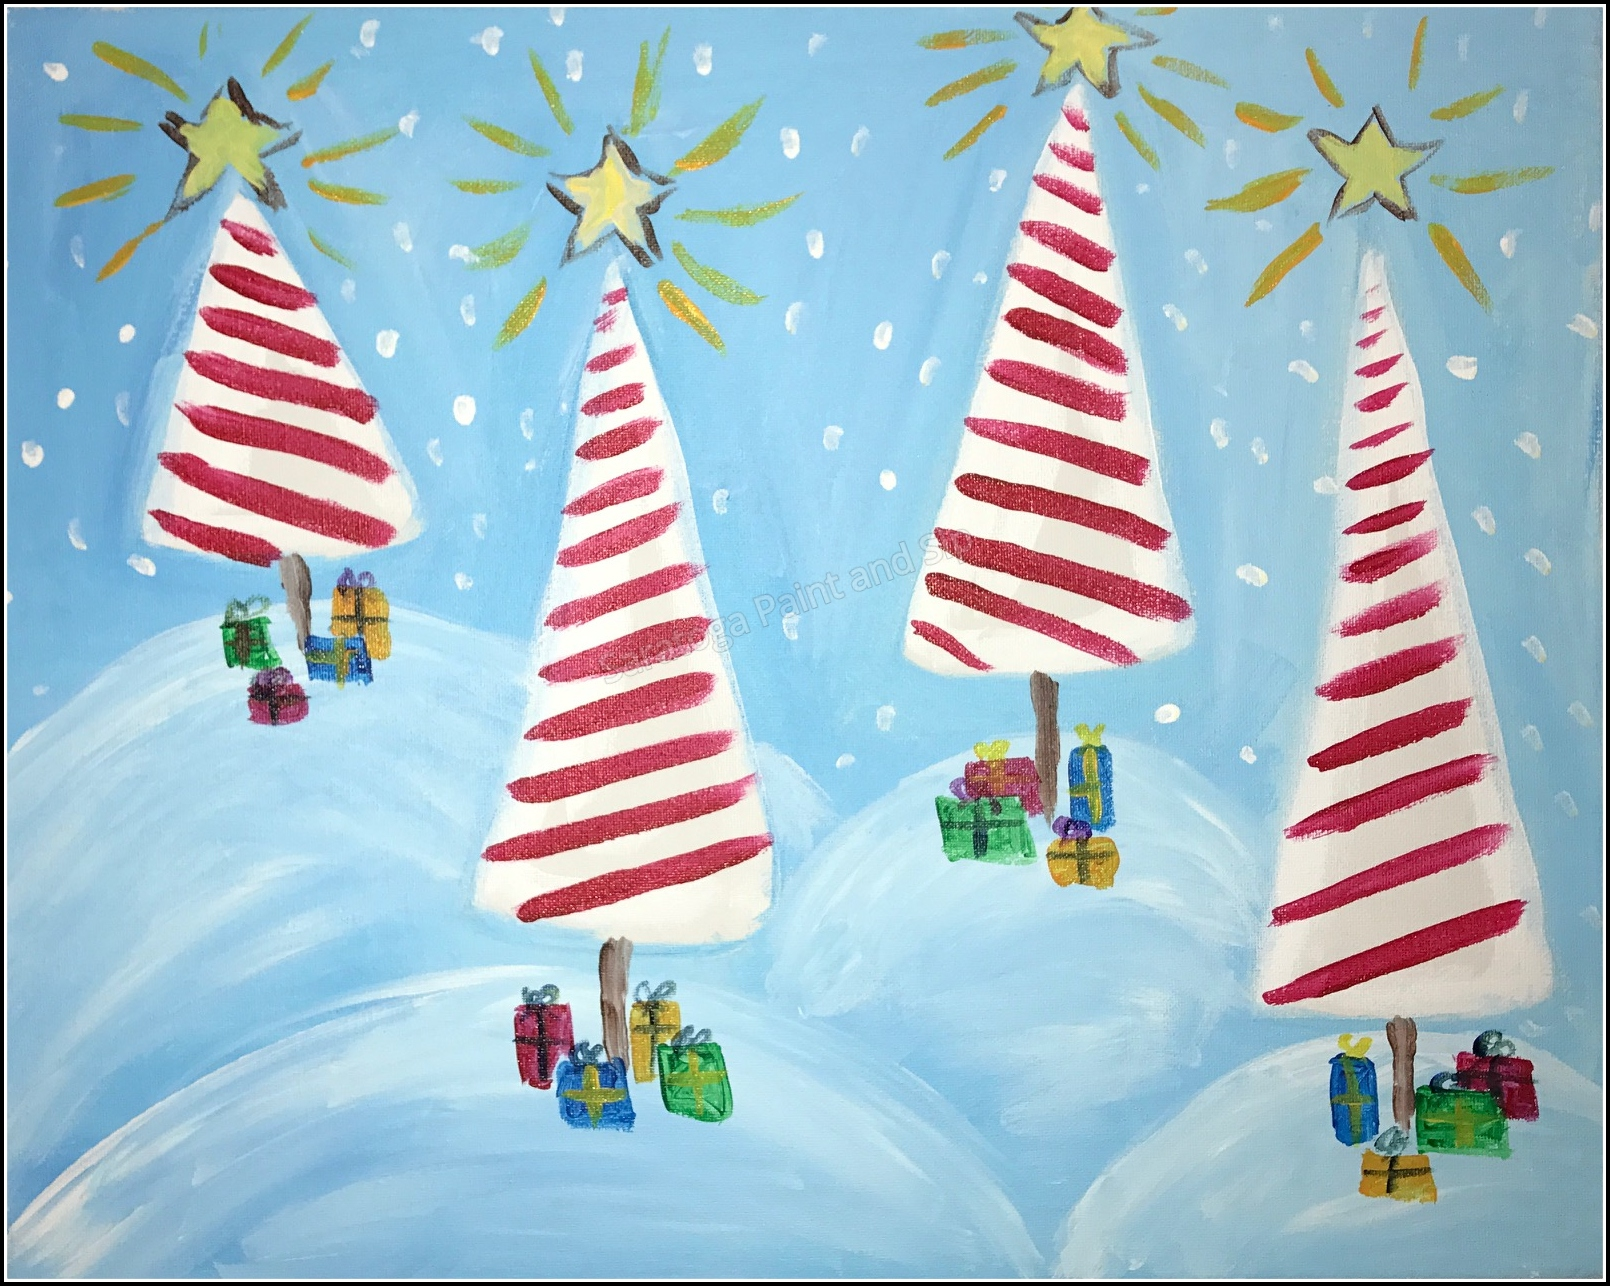 Candy Cane Forest Saratoga Paint And Sip Studio